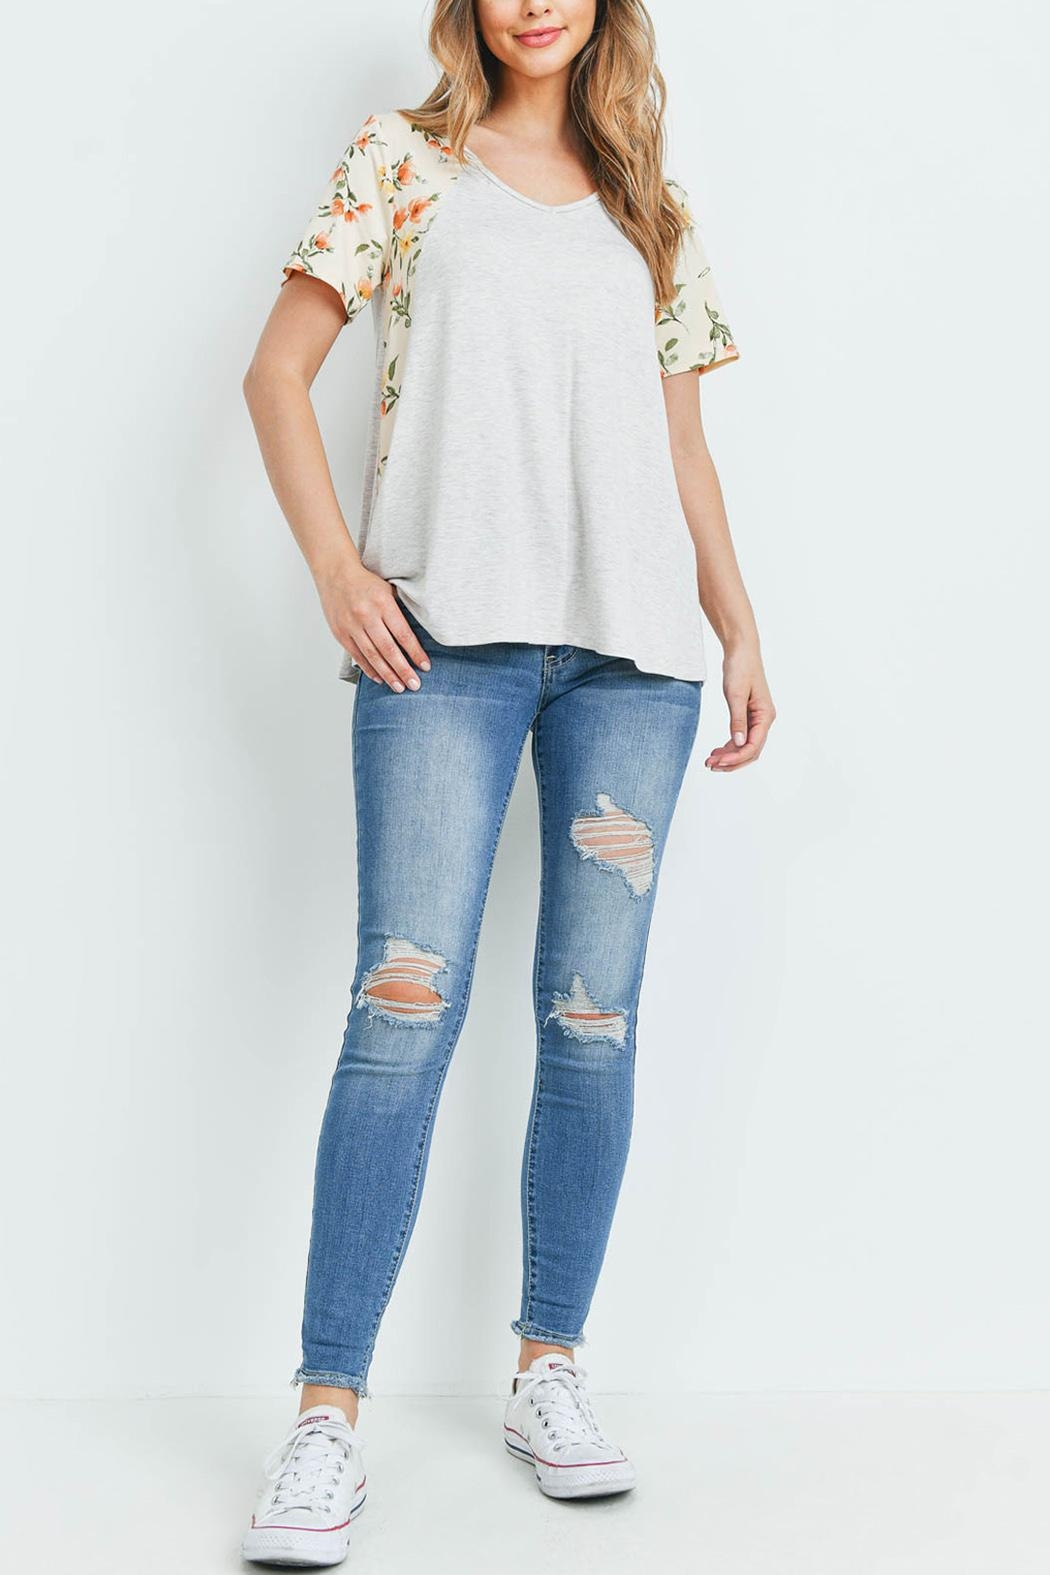 Riah Fashion Floral-Contrast-Two-Toned-V-Neck-Top - Side Cropped Image